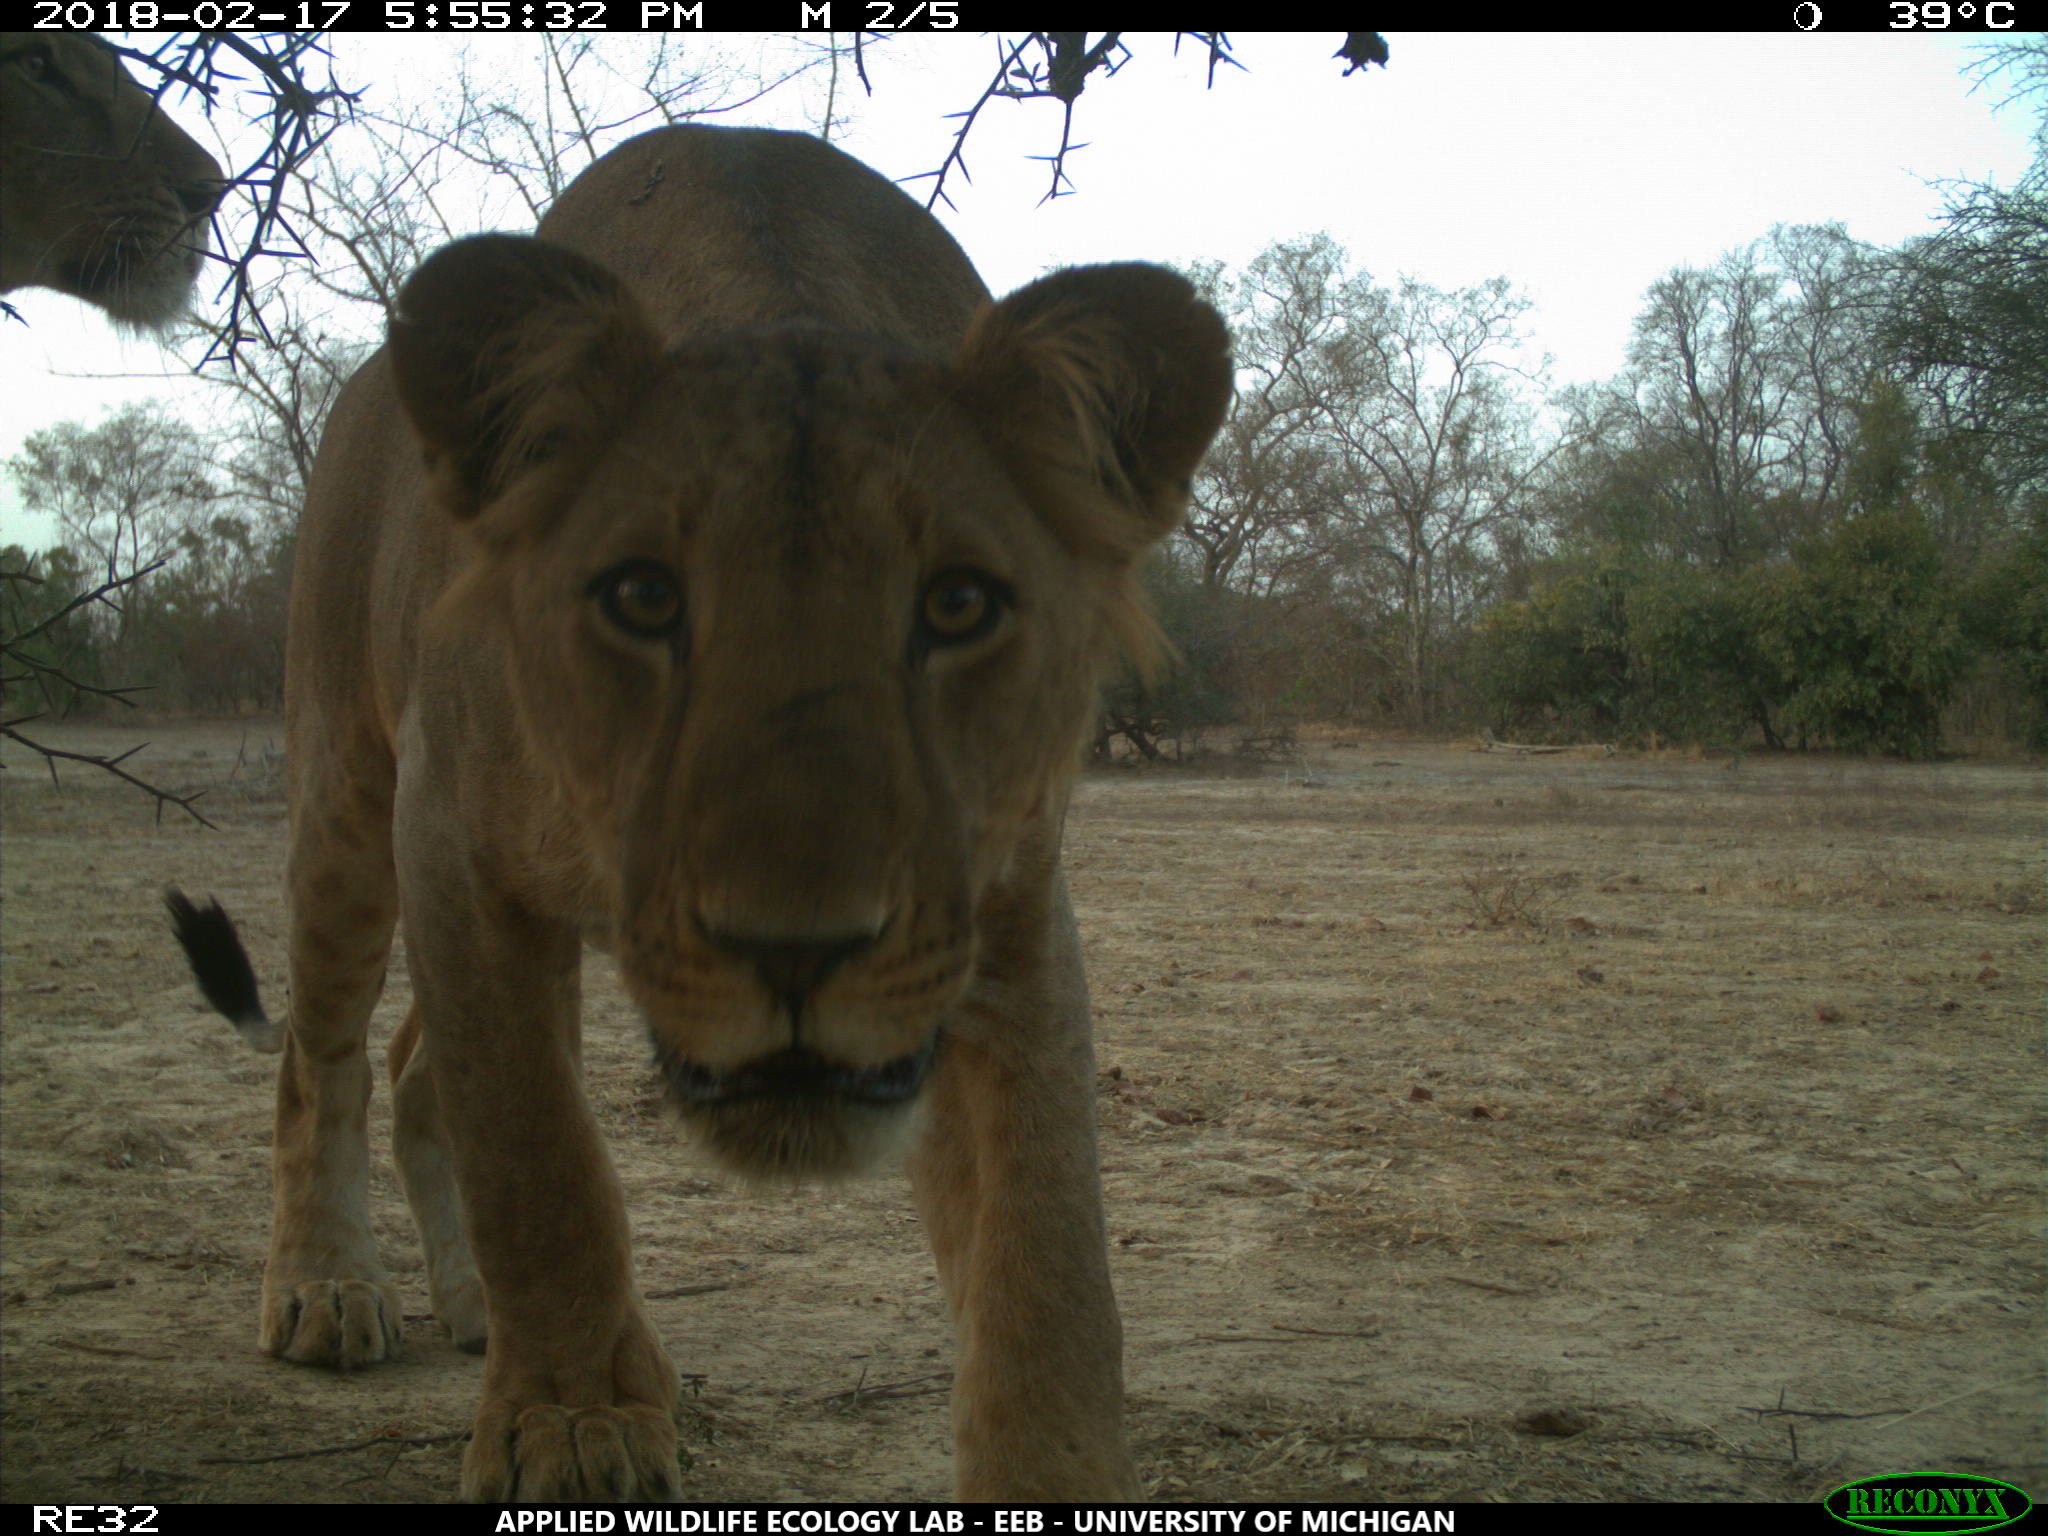 A young male West African lion photographed in a WAP Complex hunting concession during the University of Michigan wildlife camera survey. The study -- West Africa's largest wildlife camera survey -- found that lions showed no clear preference between WAP Complex national parks and hunting concessions. Image credit: University of Michigan Applied Wildlife Ecology Lab